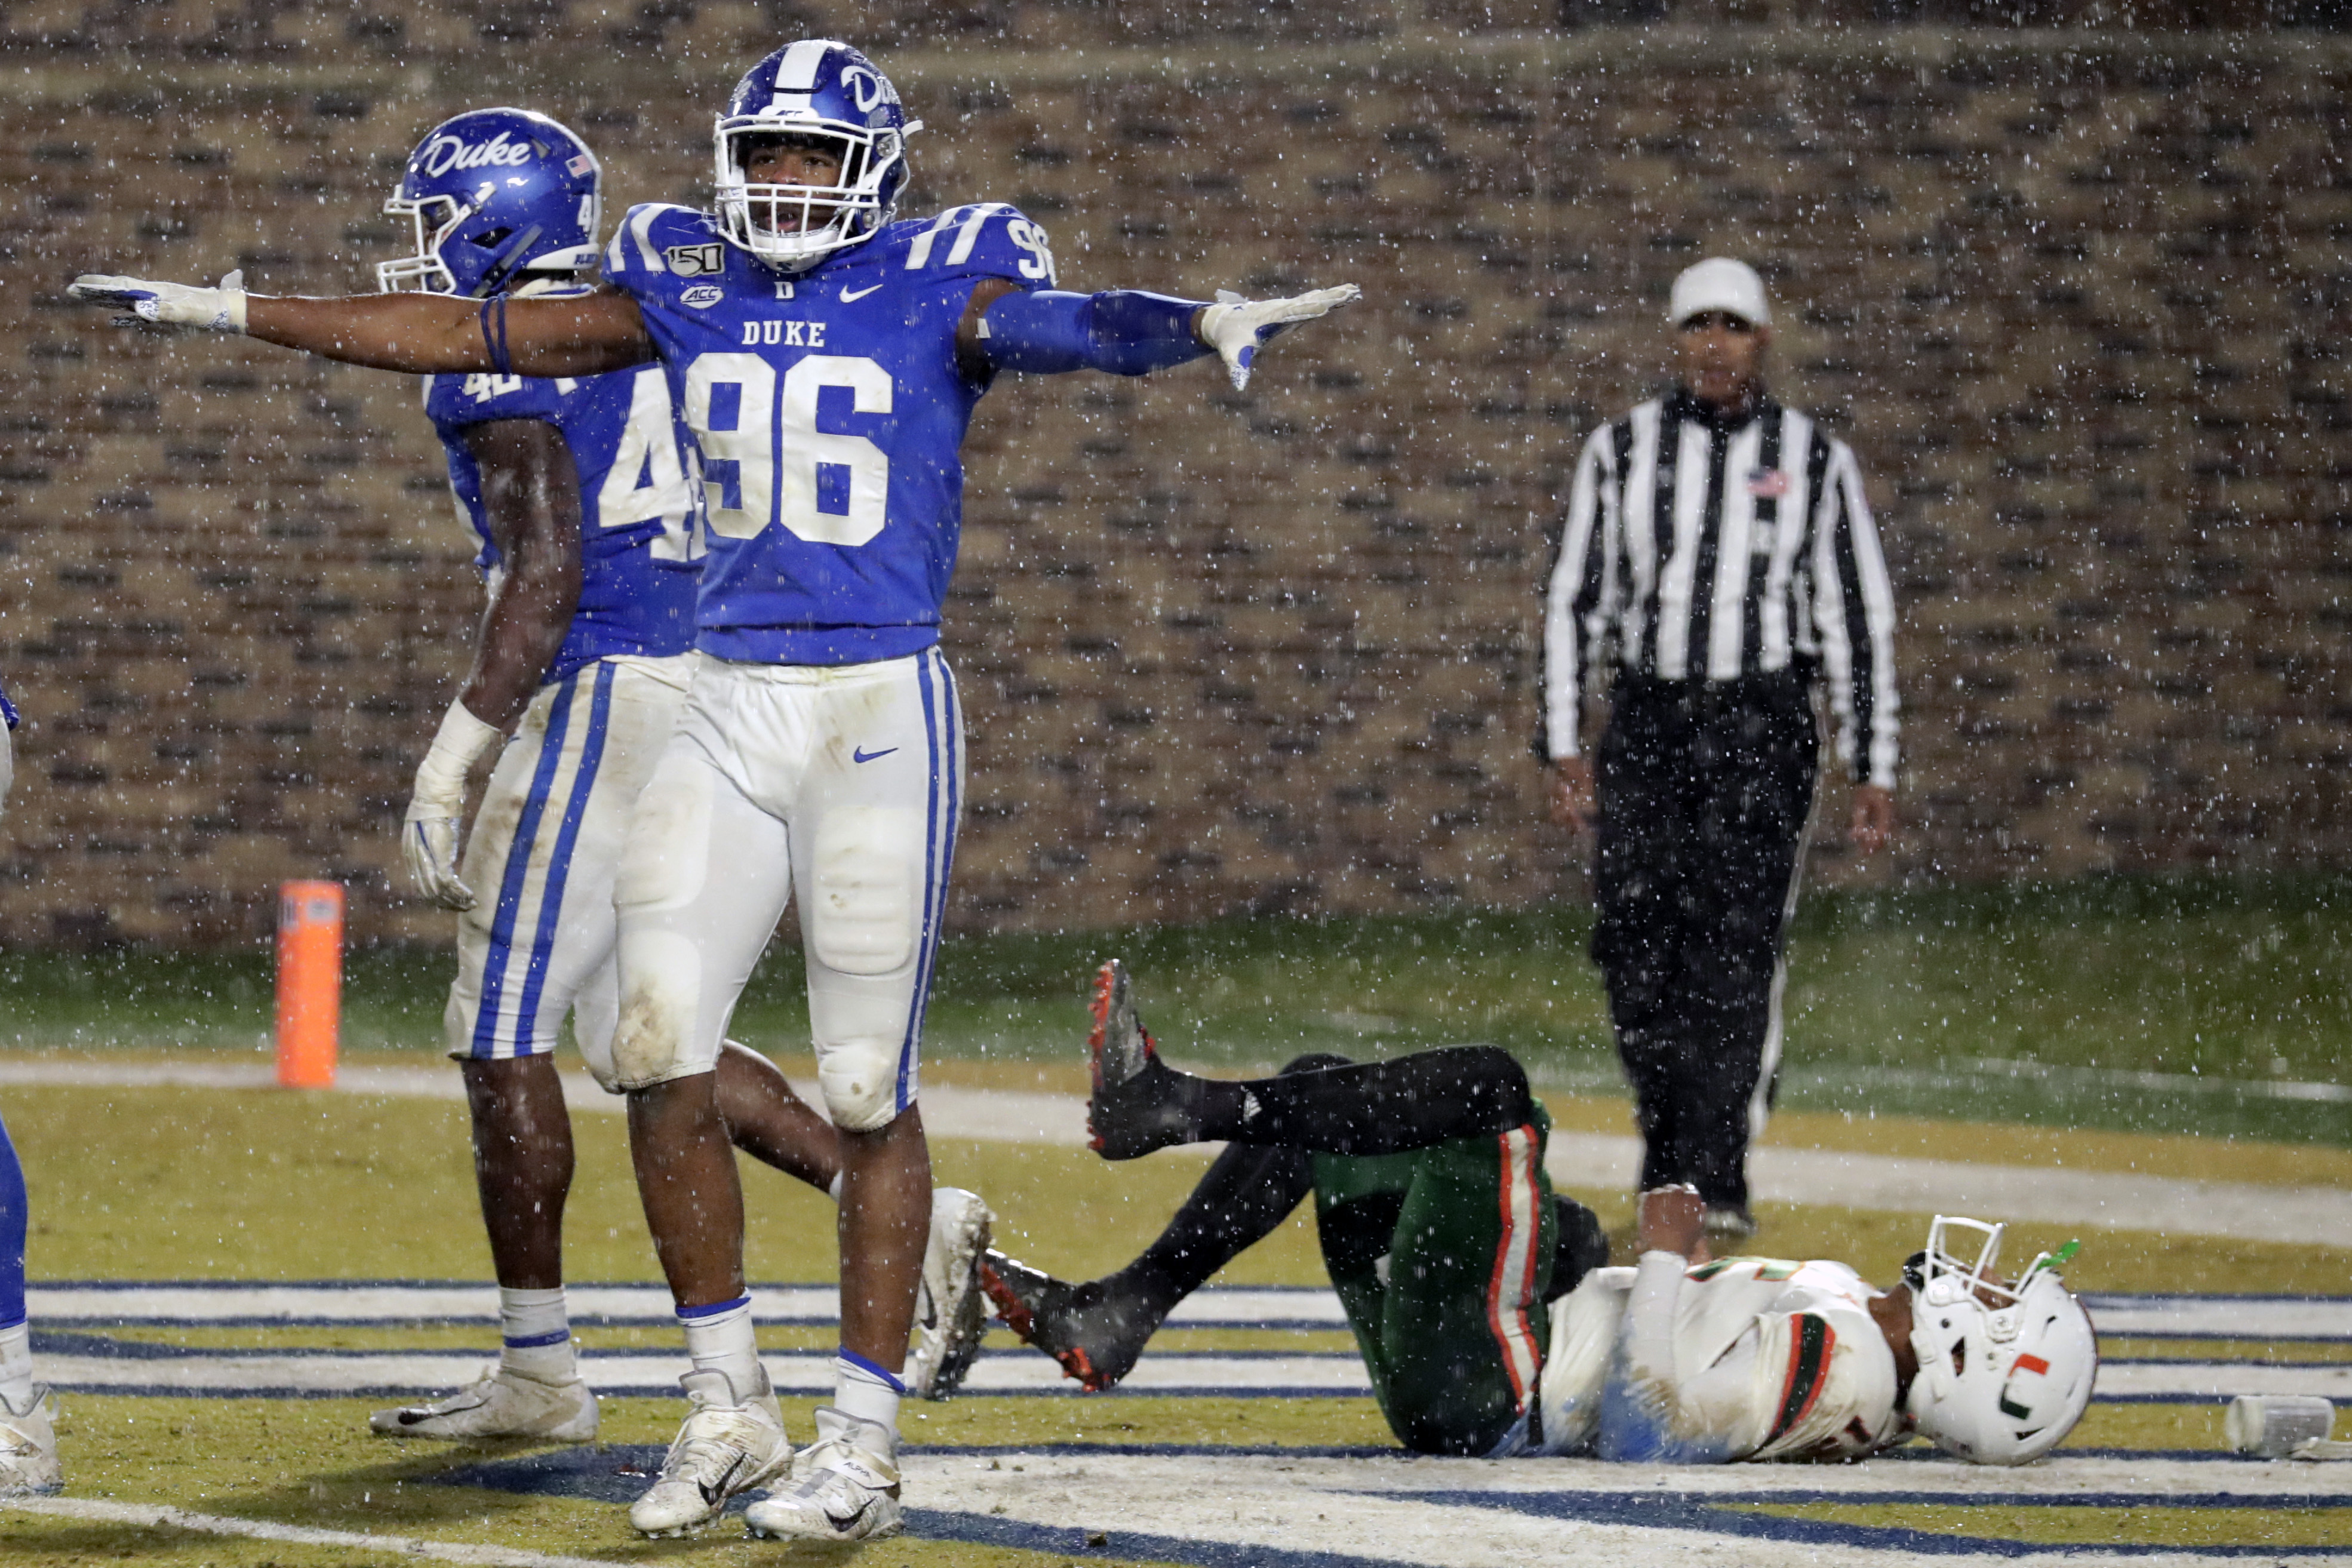 Duke's Chris Rumph II (96) celebrates in front of Miami's Jarren Williams (15) after Duke made a defensive stop during the third quarter of an NCAA college football game in Durham, N.C.in 2019.